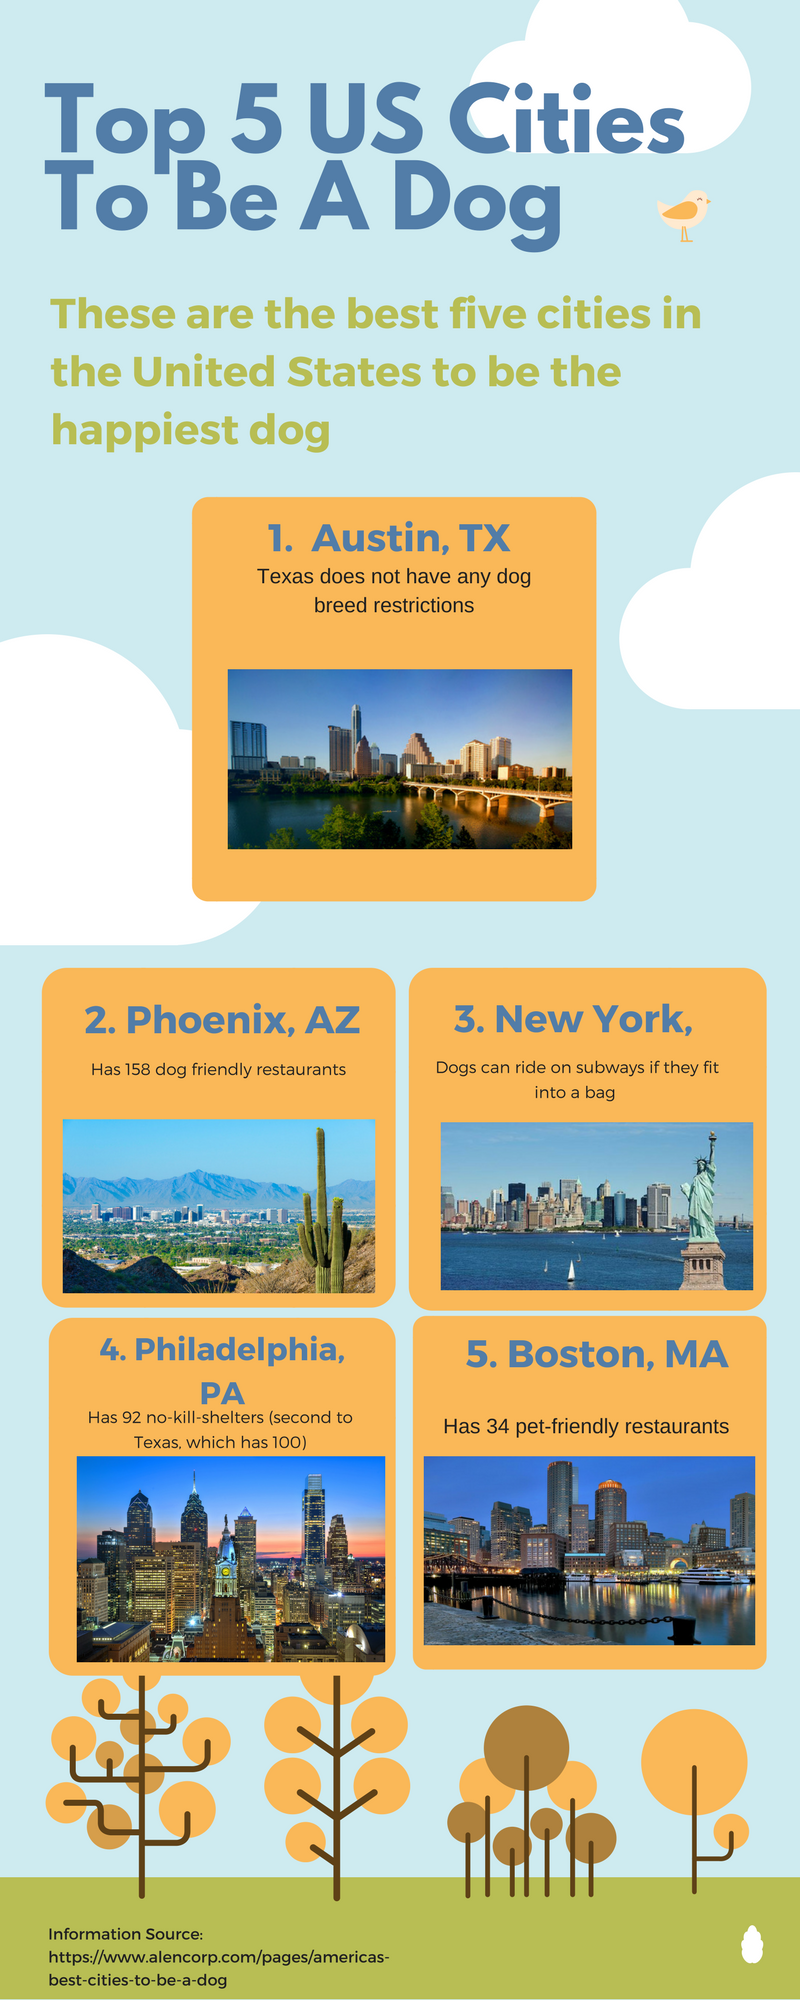 Top 5 US Cities To Be A Dog (1)